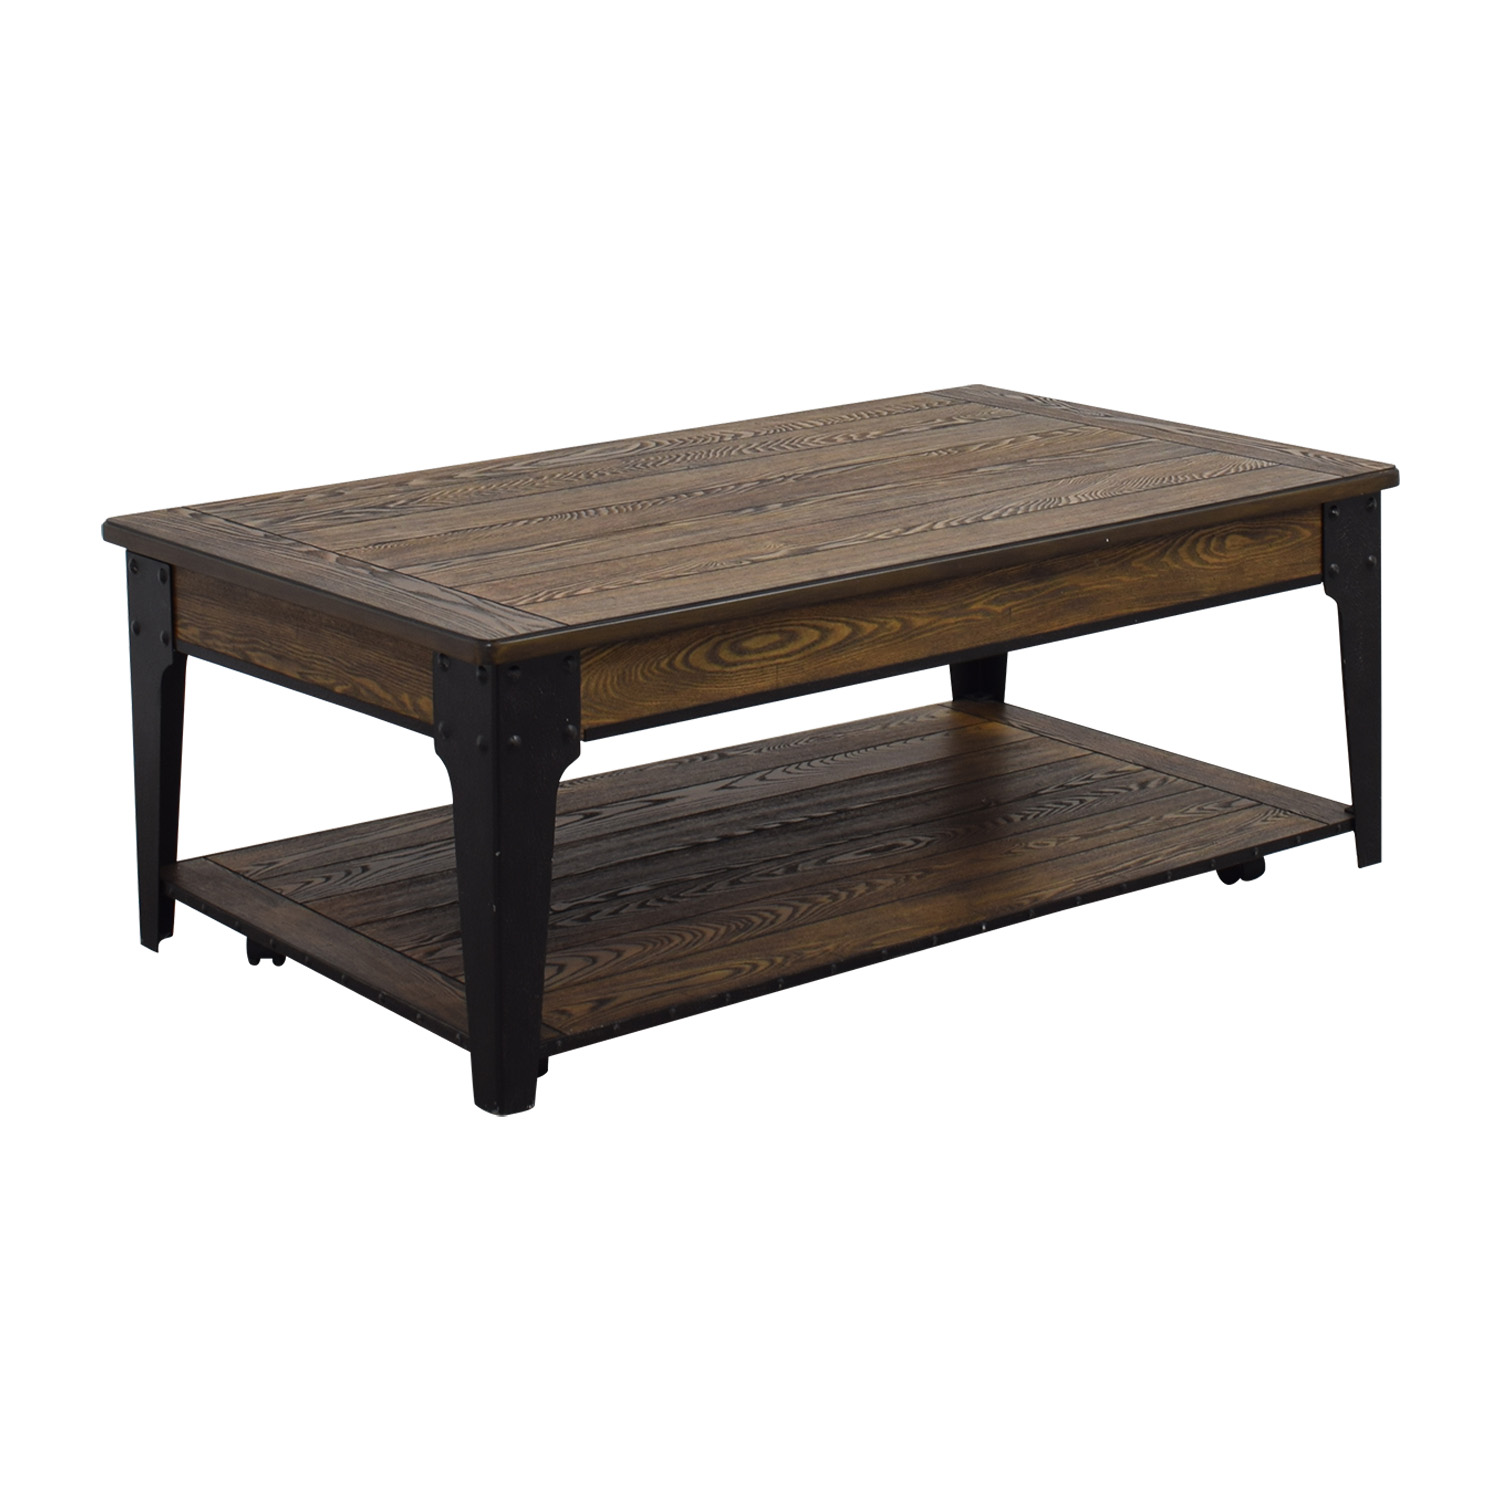 37% OFF Magnussen Magnussen Lakehurst Lift Top Coffee Table with